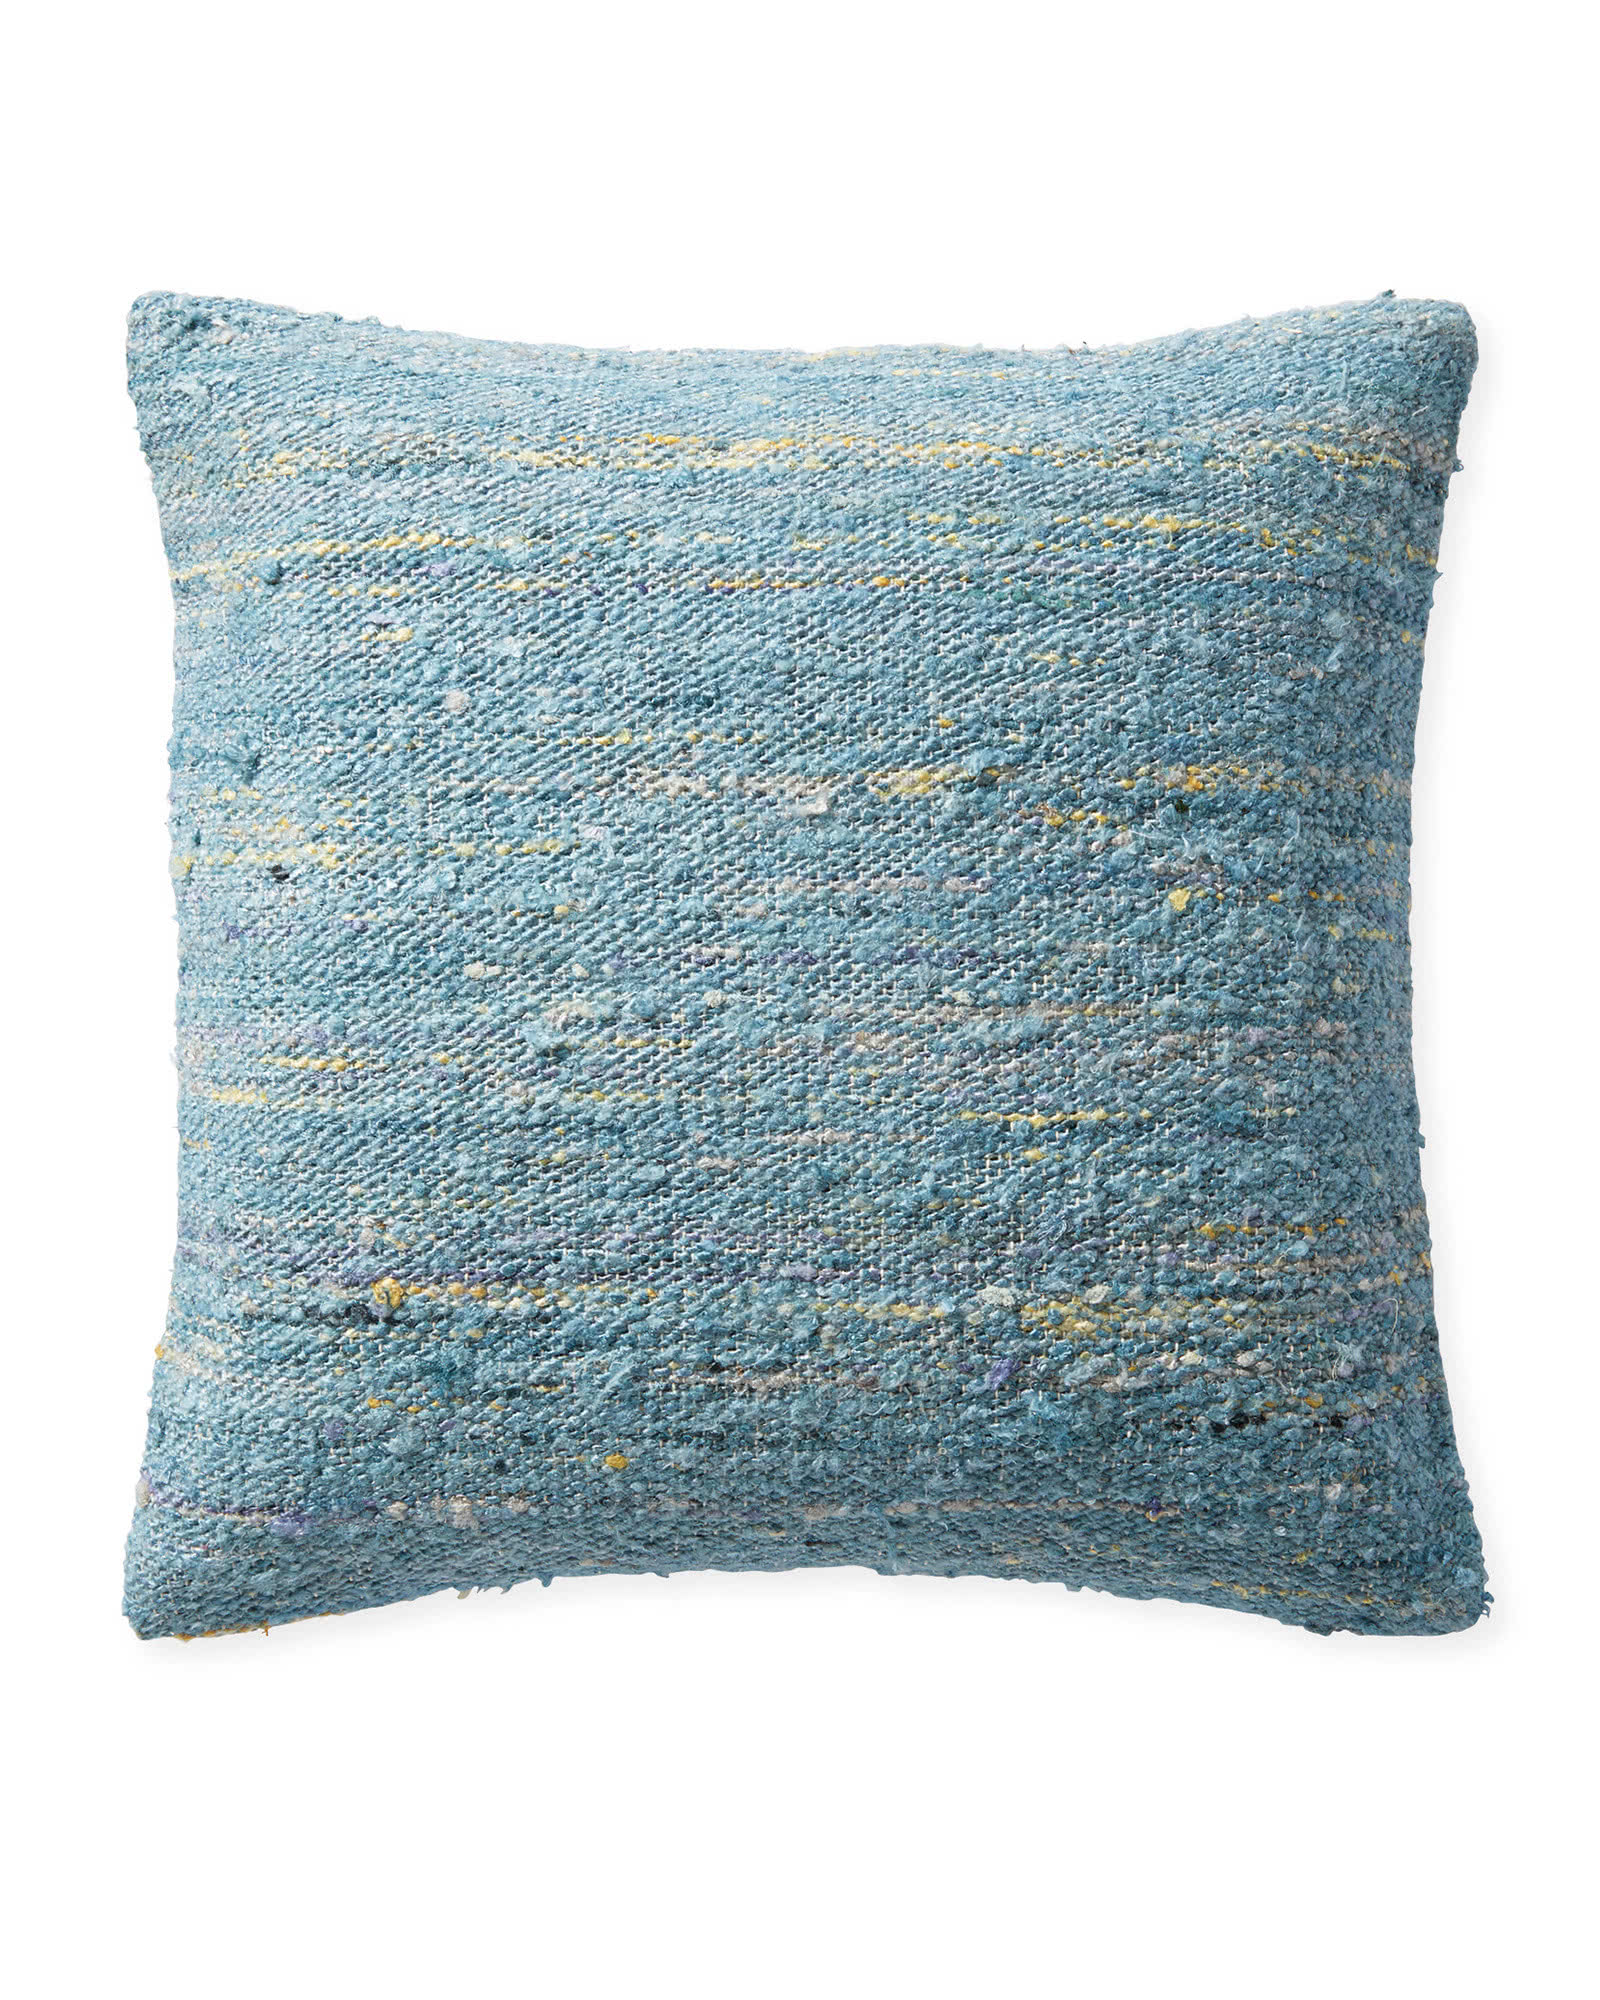 Keys Pillow Cover, Blue